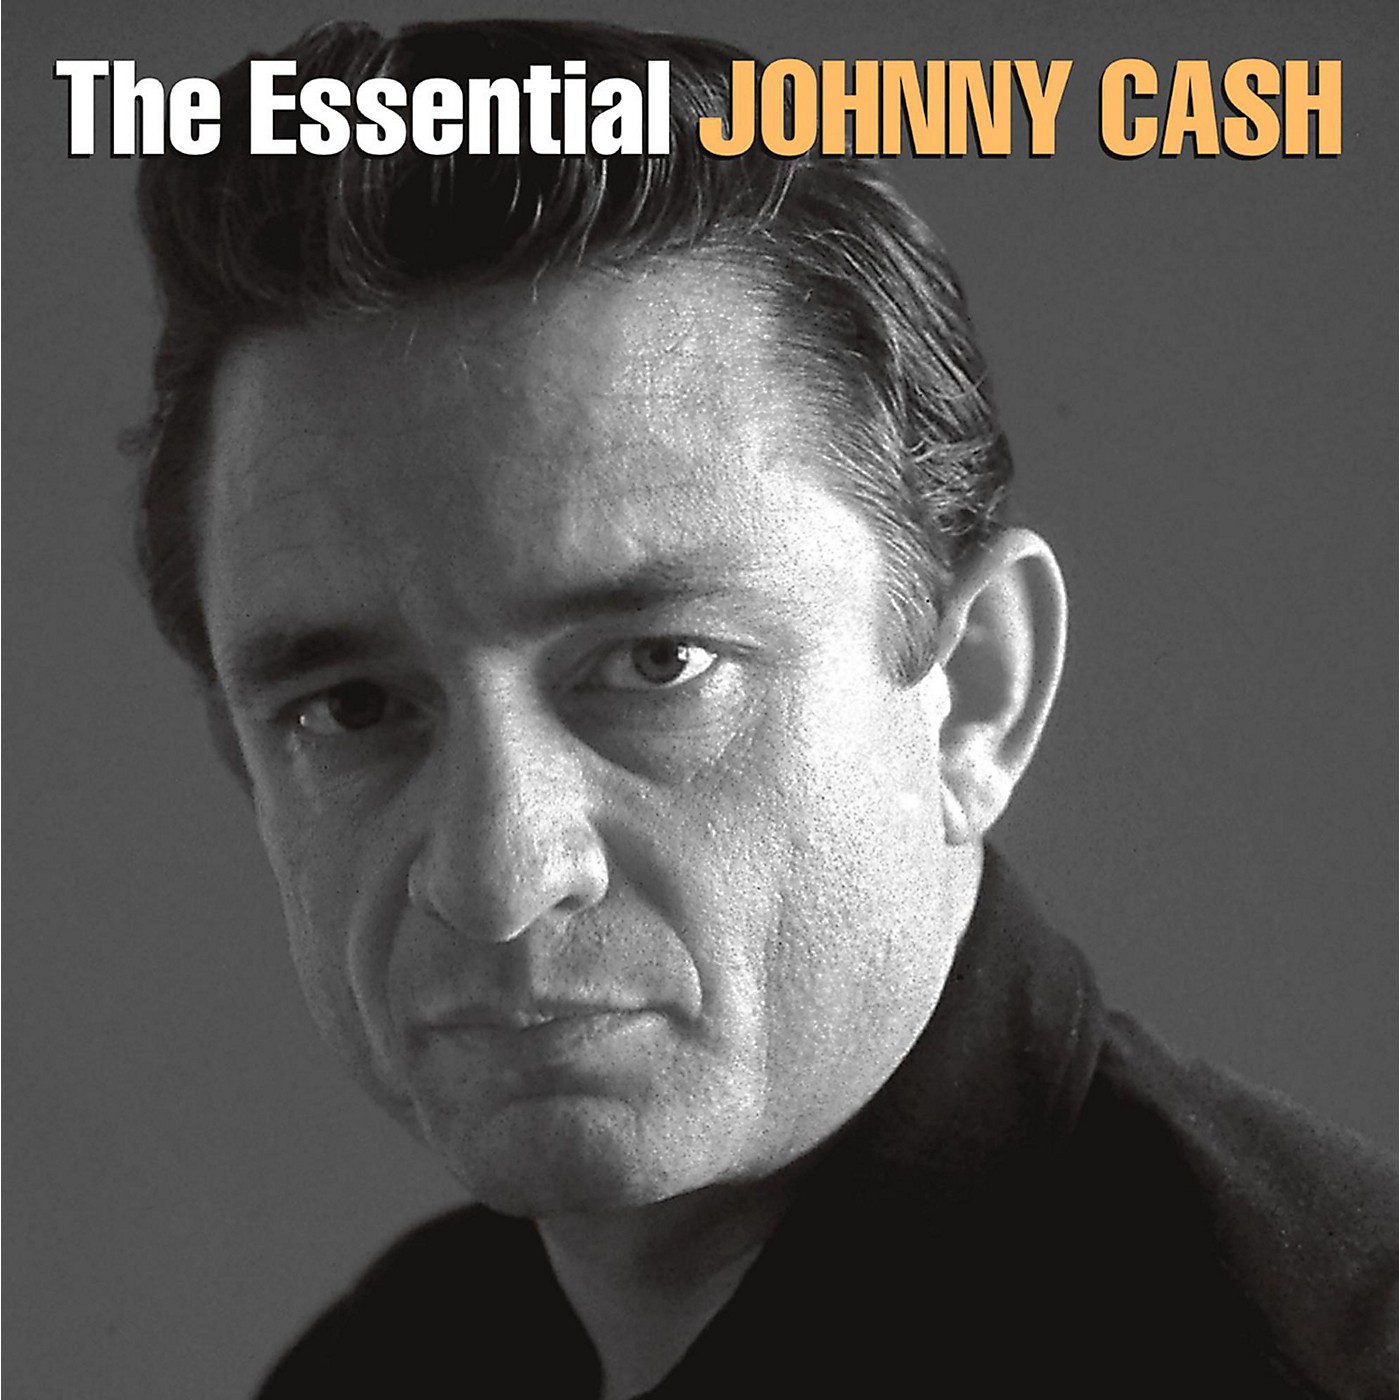 Sony Johnny Cash - The Essential Johnny Cash thumbnail